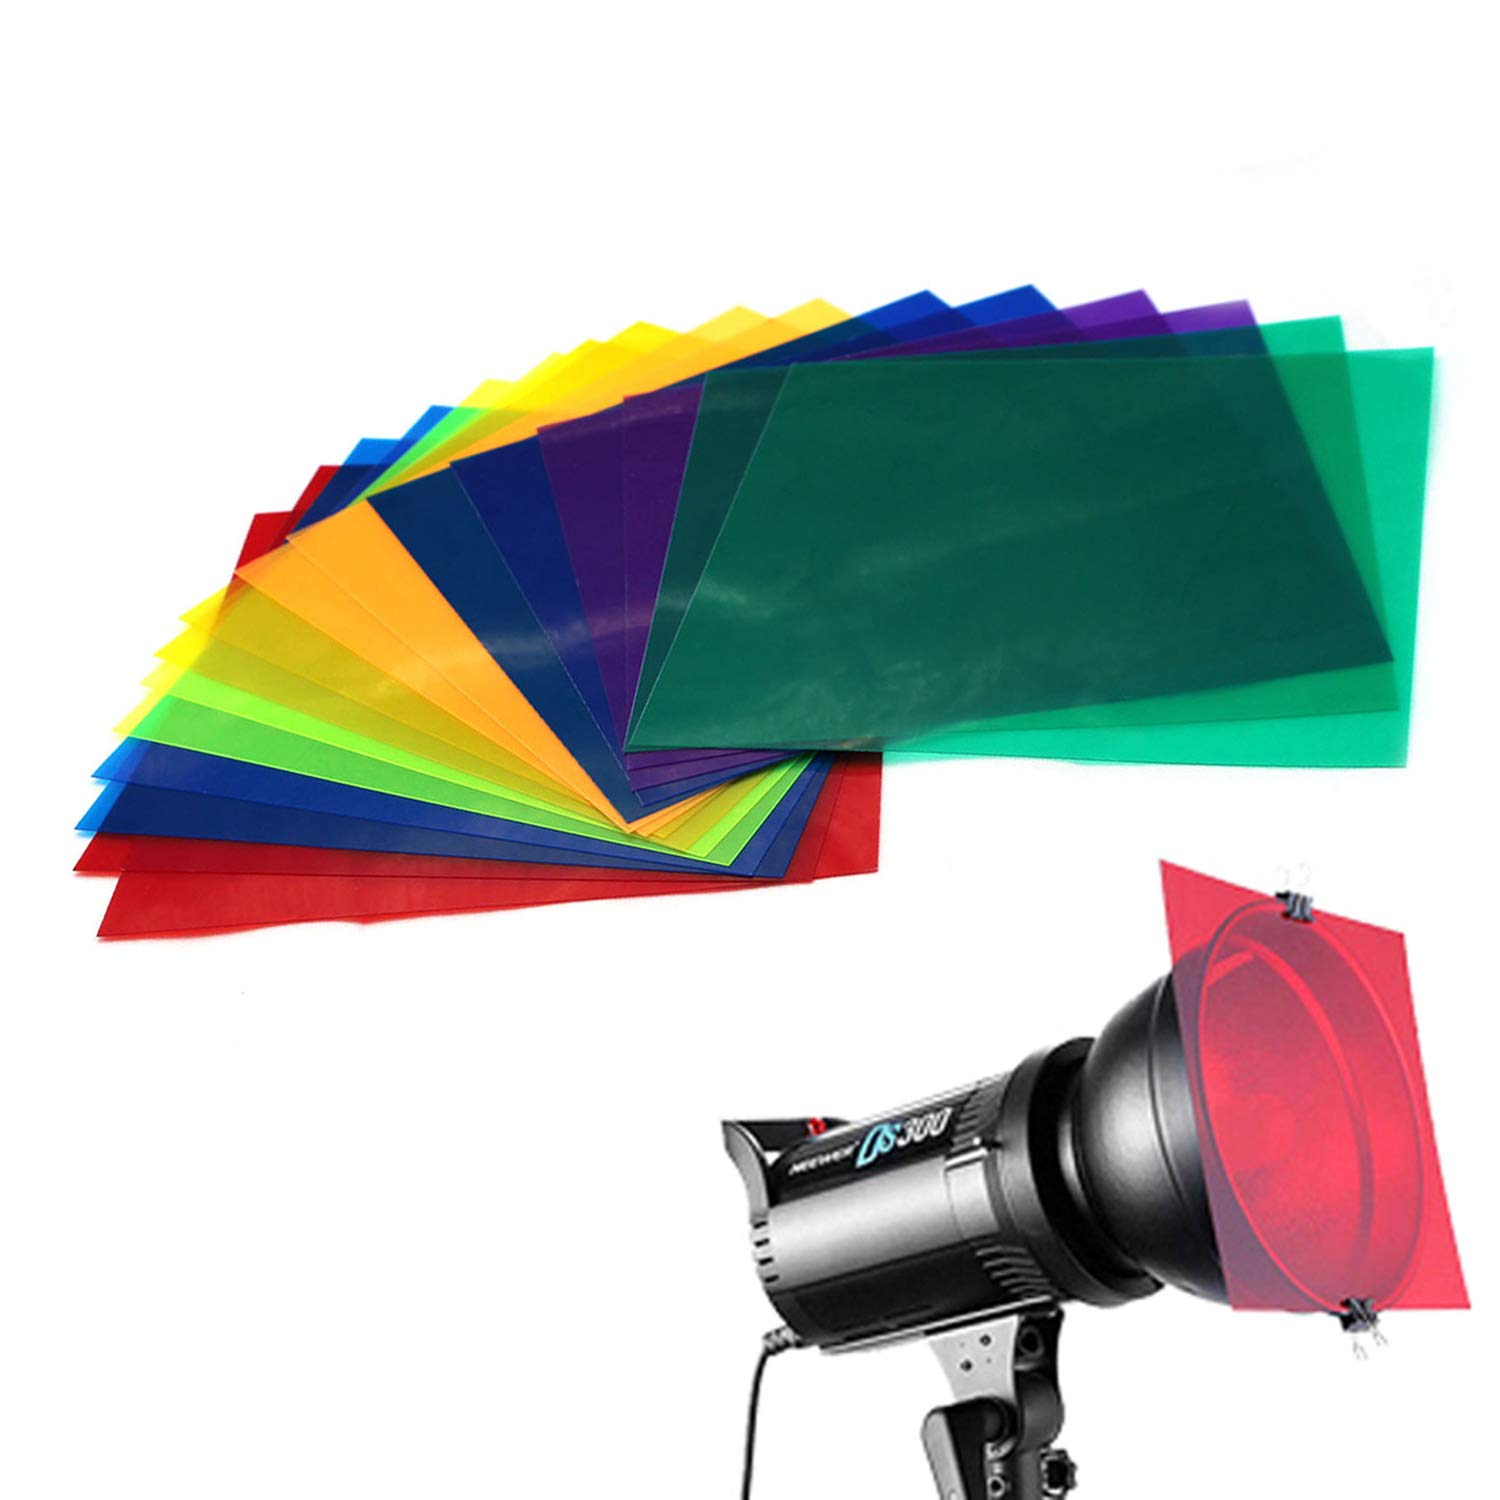 16 Pack Colored Overlays Transparency Color Film Plastic Sheets Correction Gel Light Filter Sheet,20 by 20cm,8 Assorted Colors by color mogu